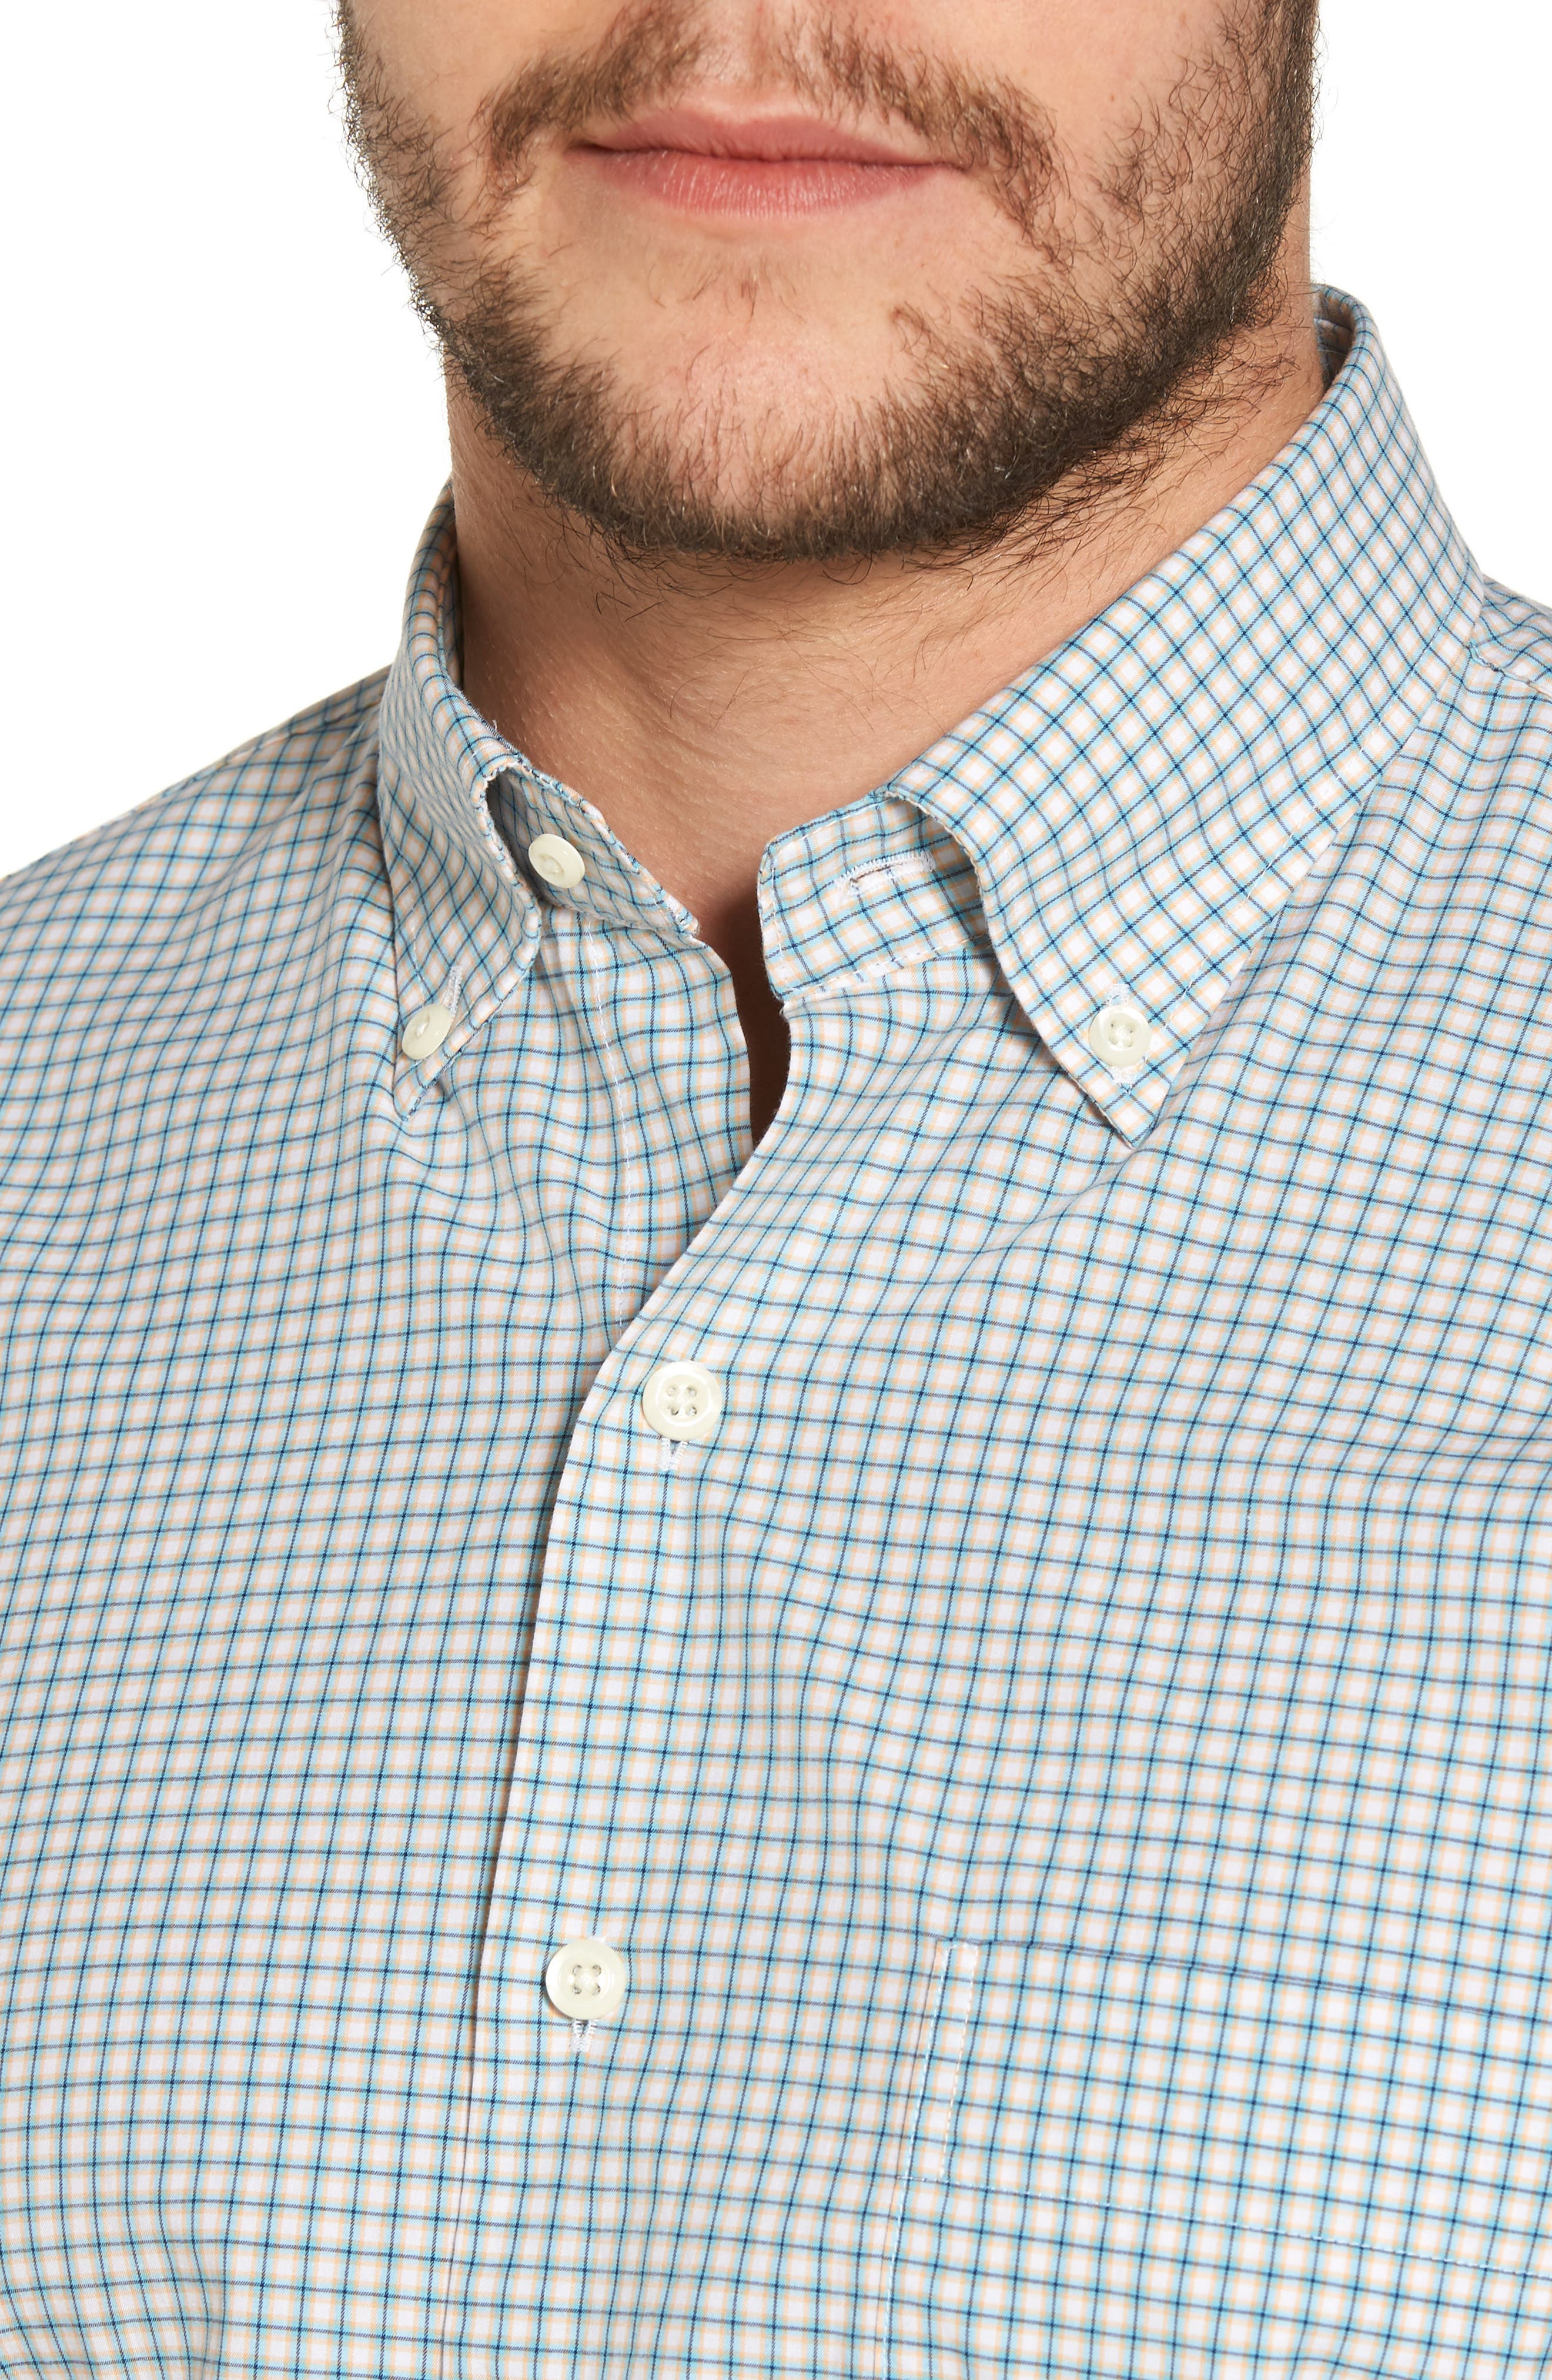 Classic Fit Alligator Check Sport Shirt,                             Alternate thumbnail 4, color,                             Dreamsicle